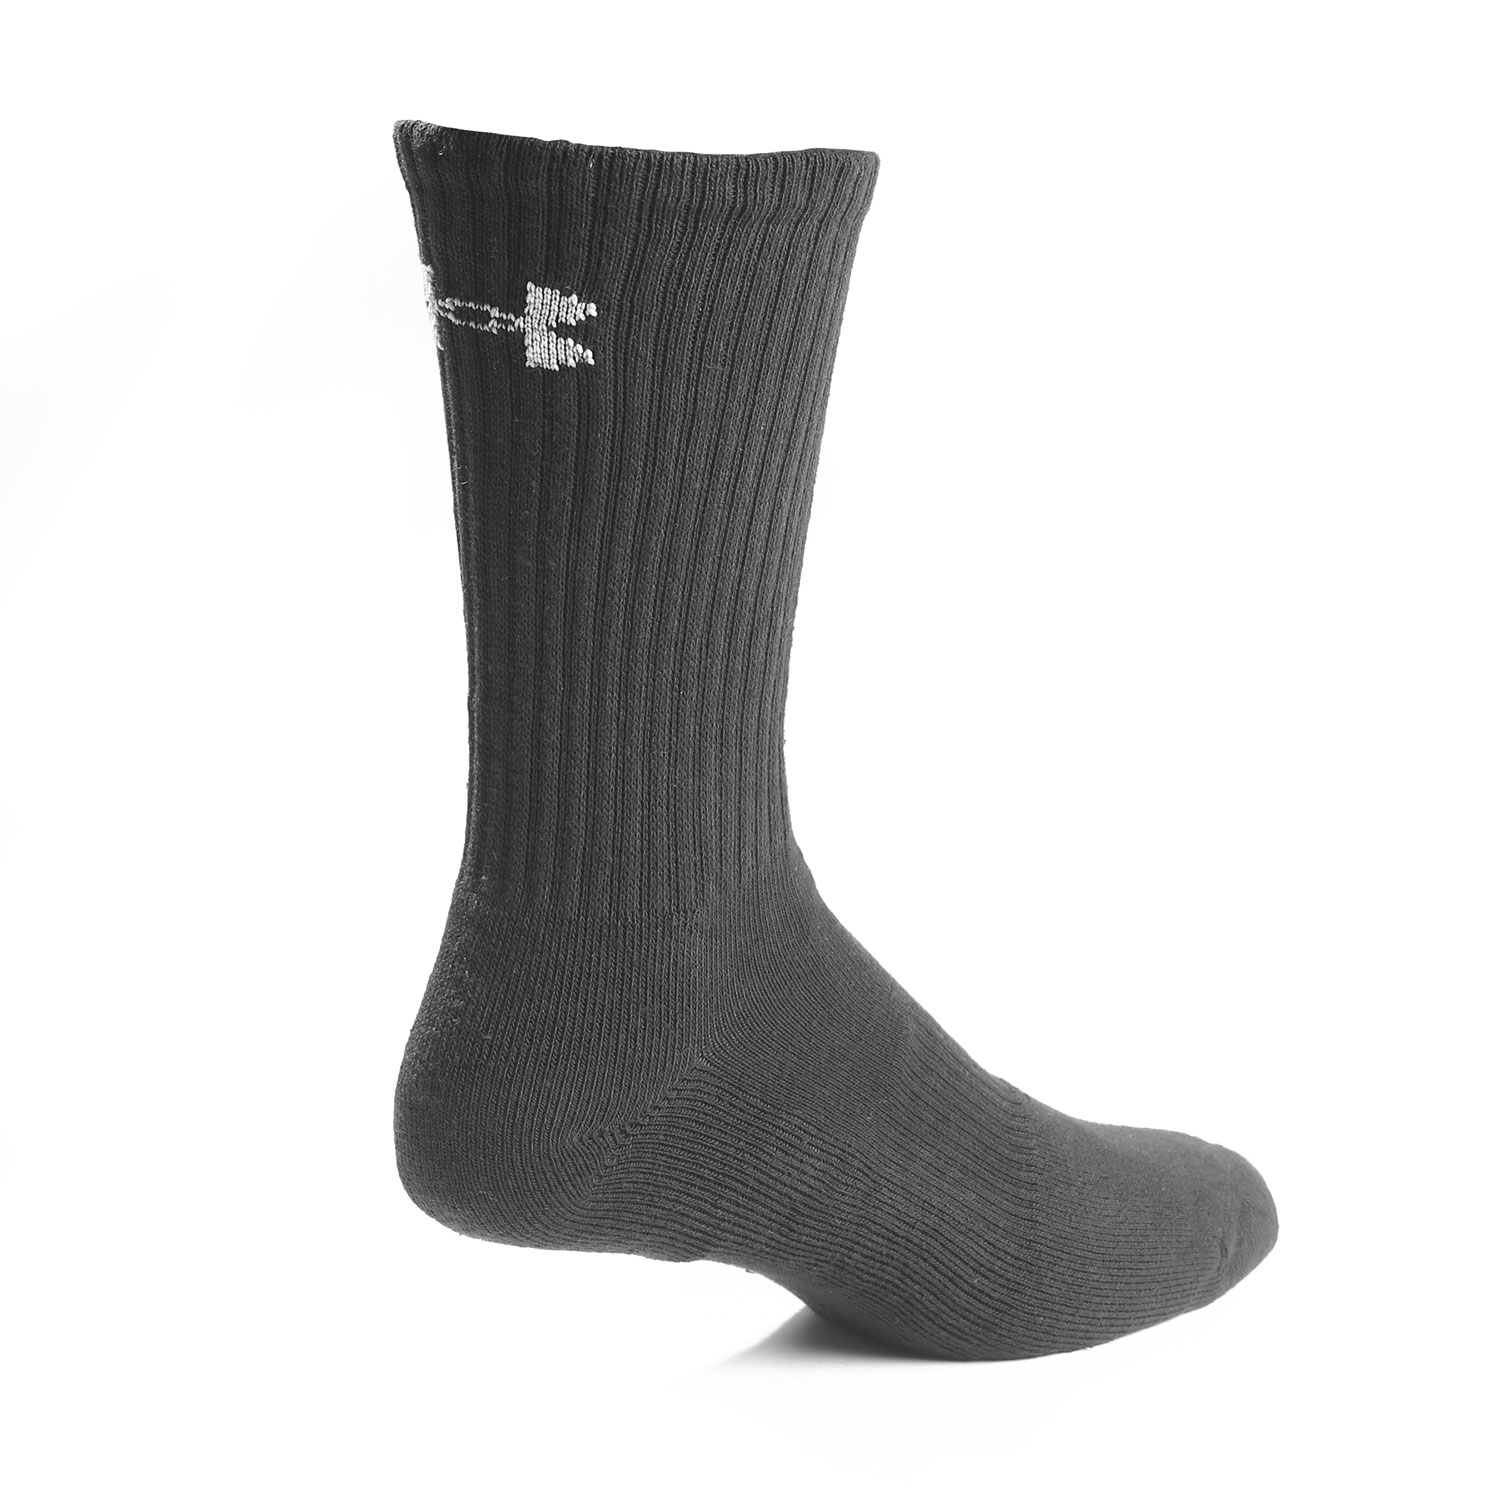 2493aded932 Under Armour Charged Cotton 2.0 Crew Sock 6 Pack